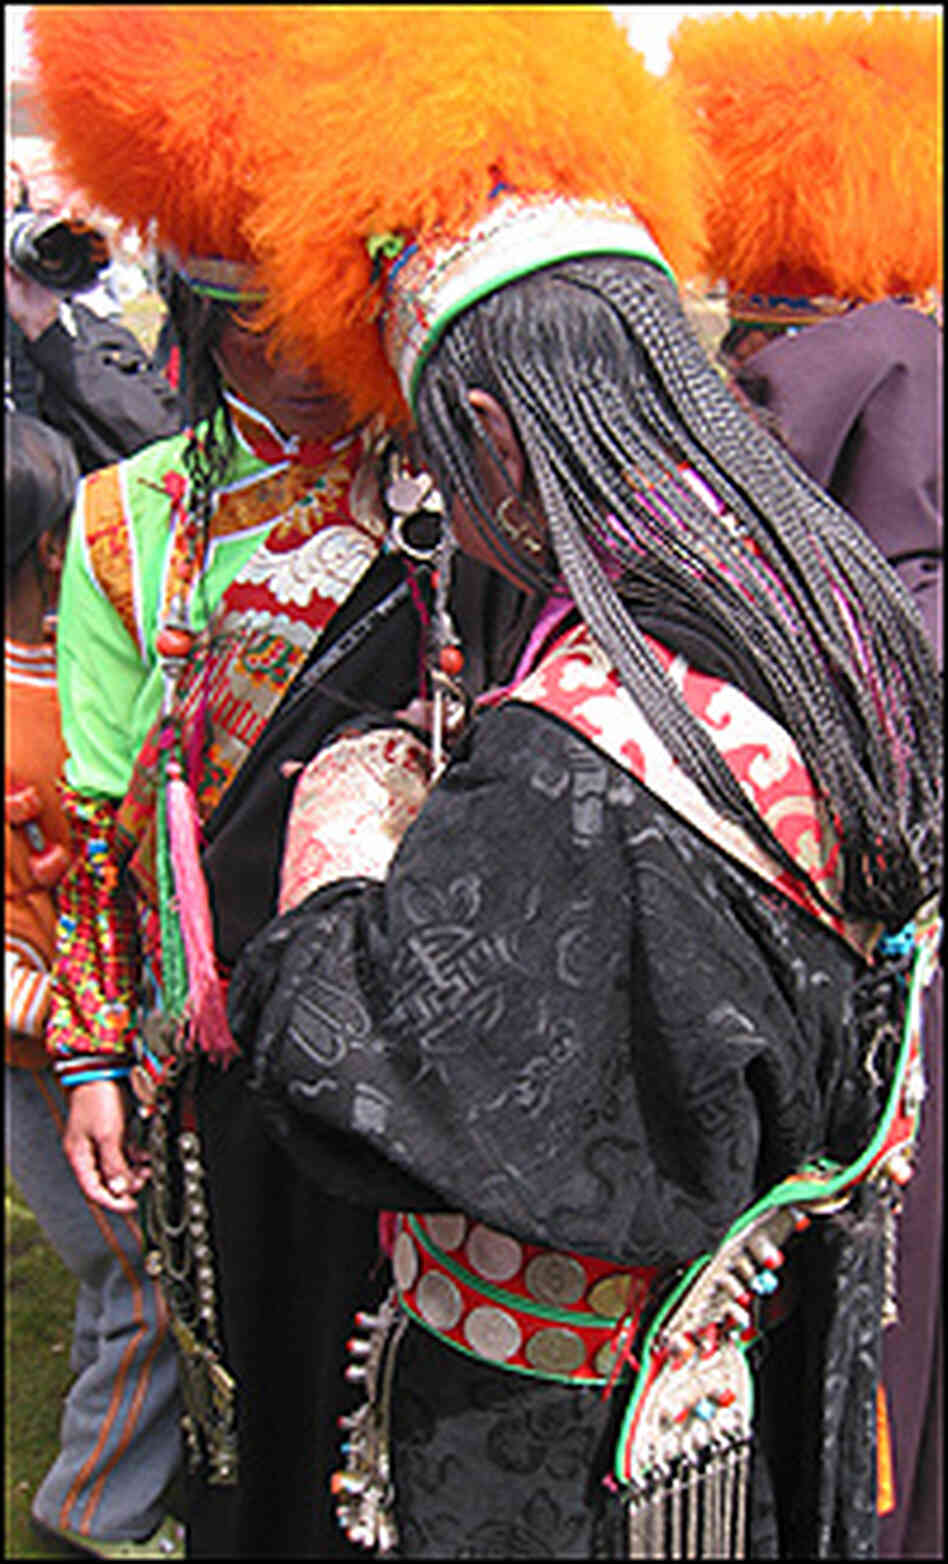 Khampa women dress up for the horse festival, braiding their hair into 108 strands.